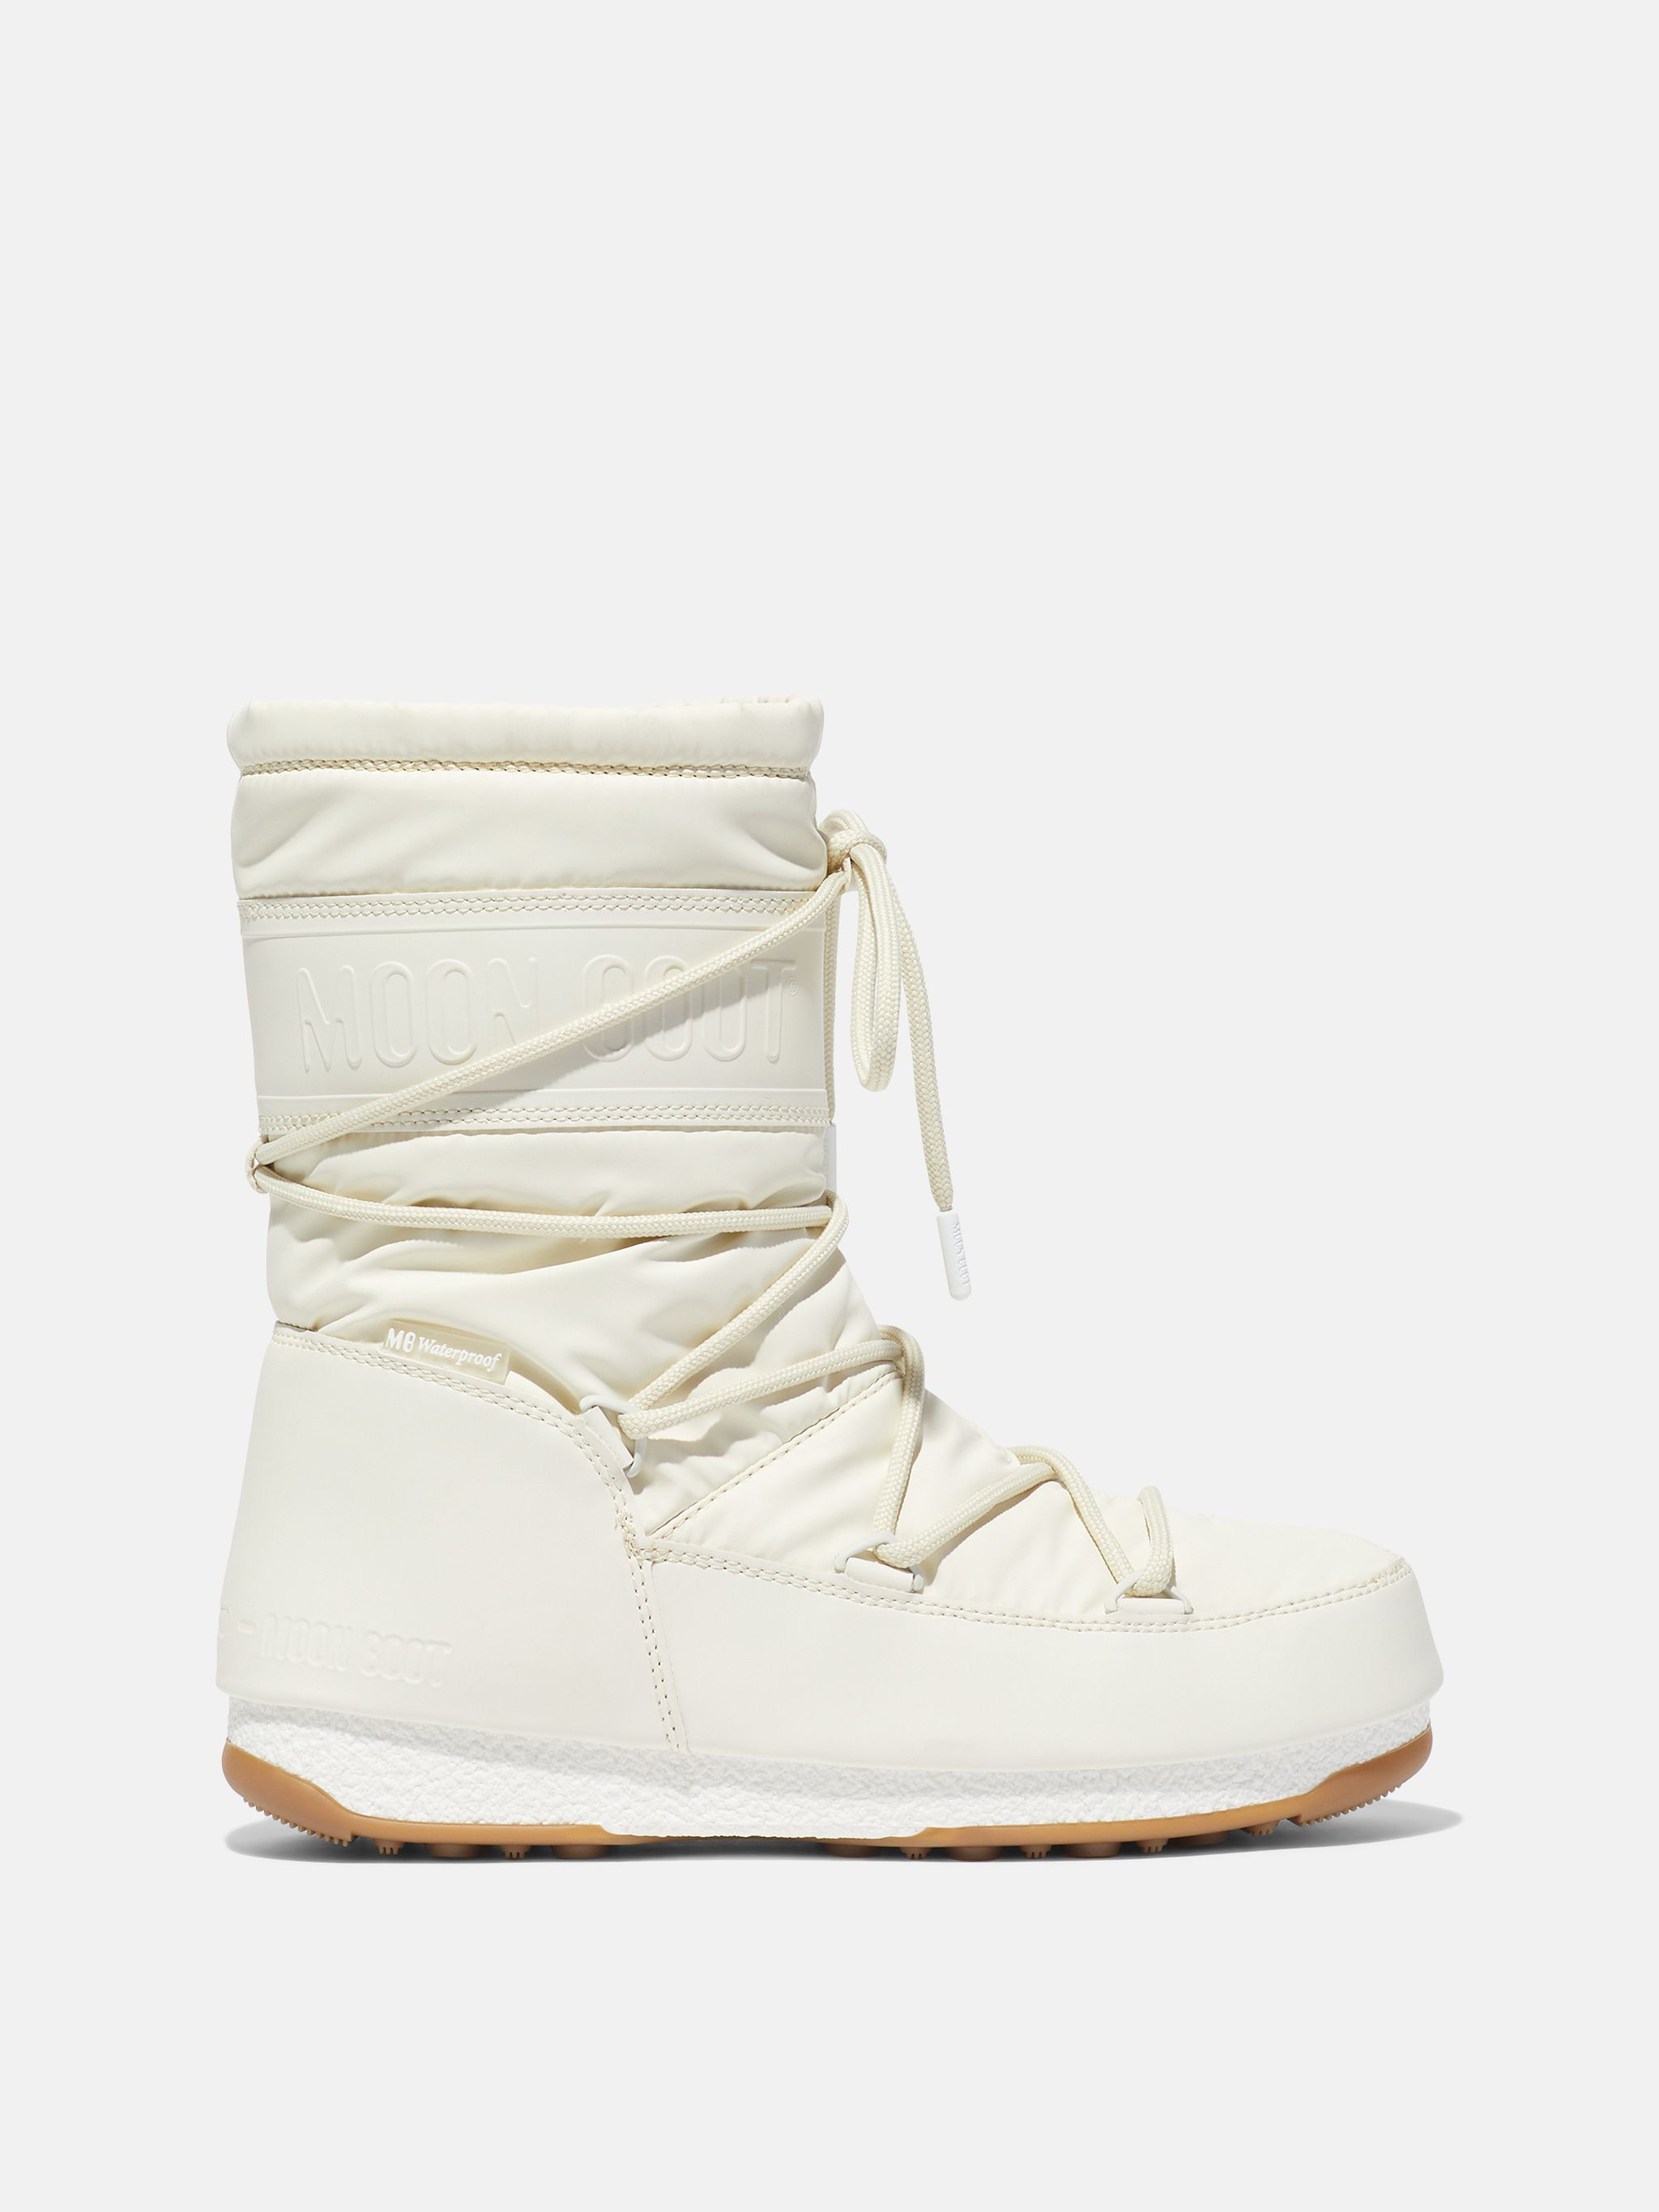 PROTECHT MID CREAM RUBBER BOOTS